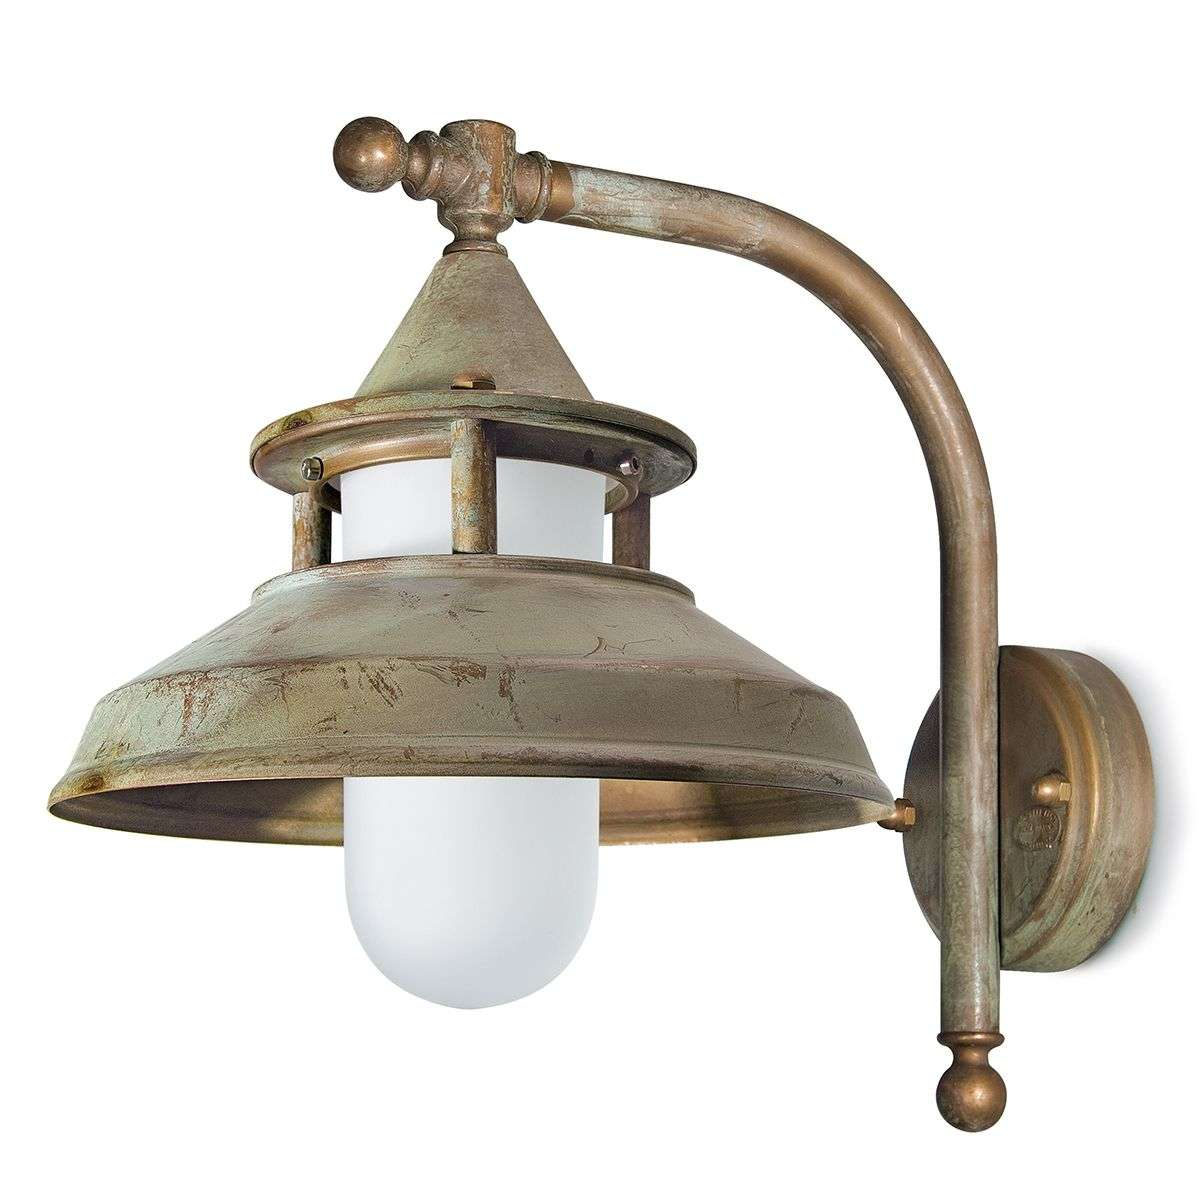 Rustic Lighting Company: Rustic Outdoor Wall Light Antique